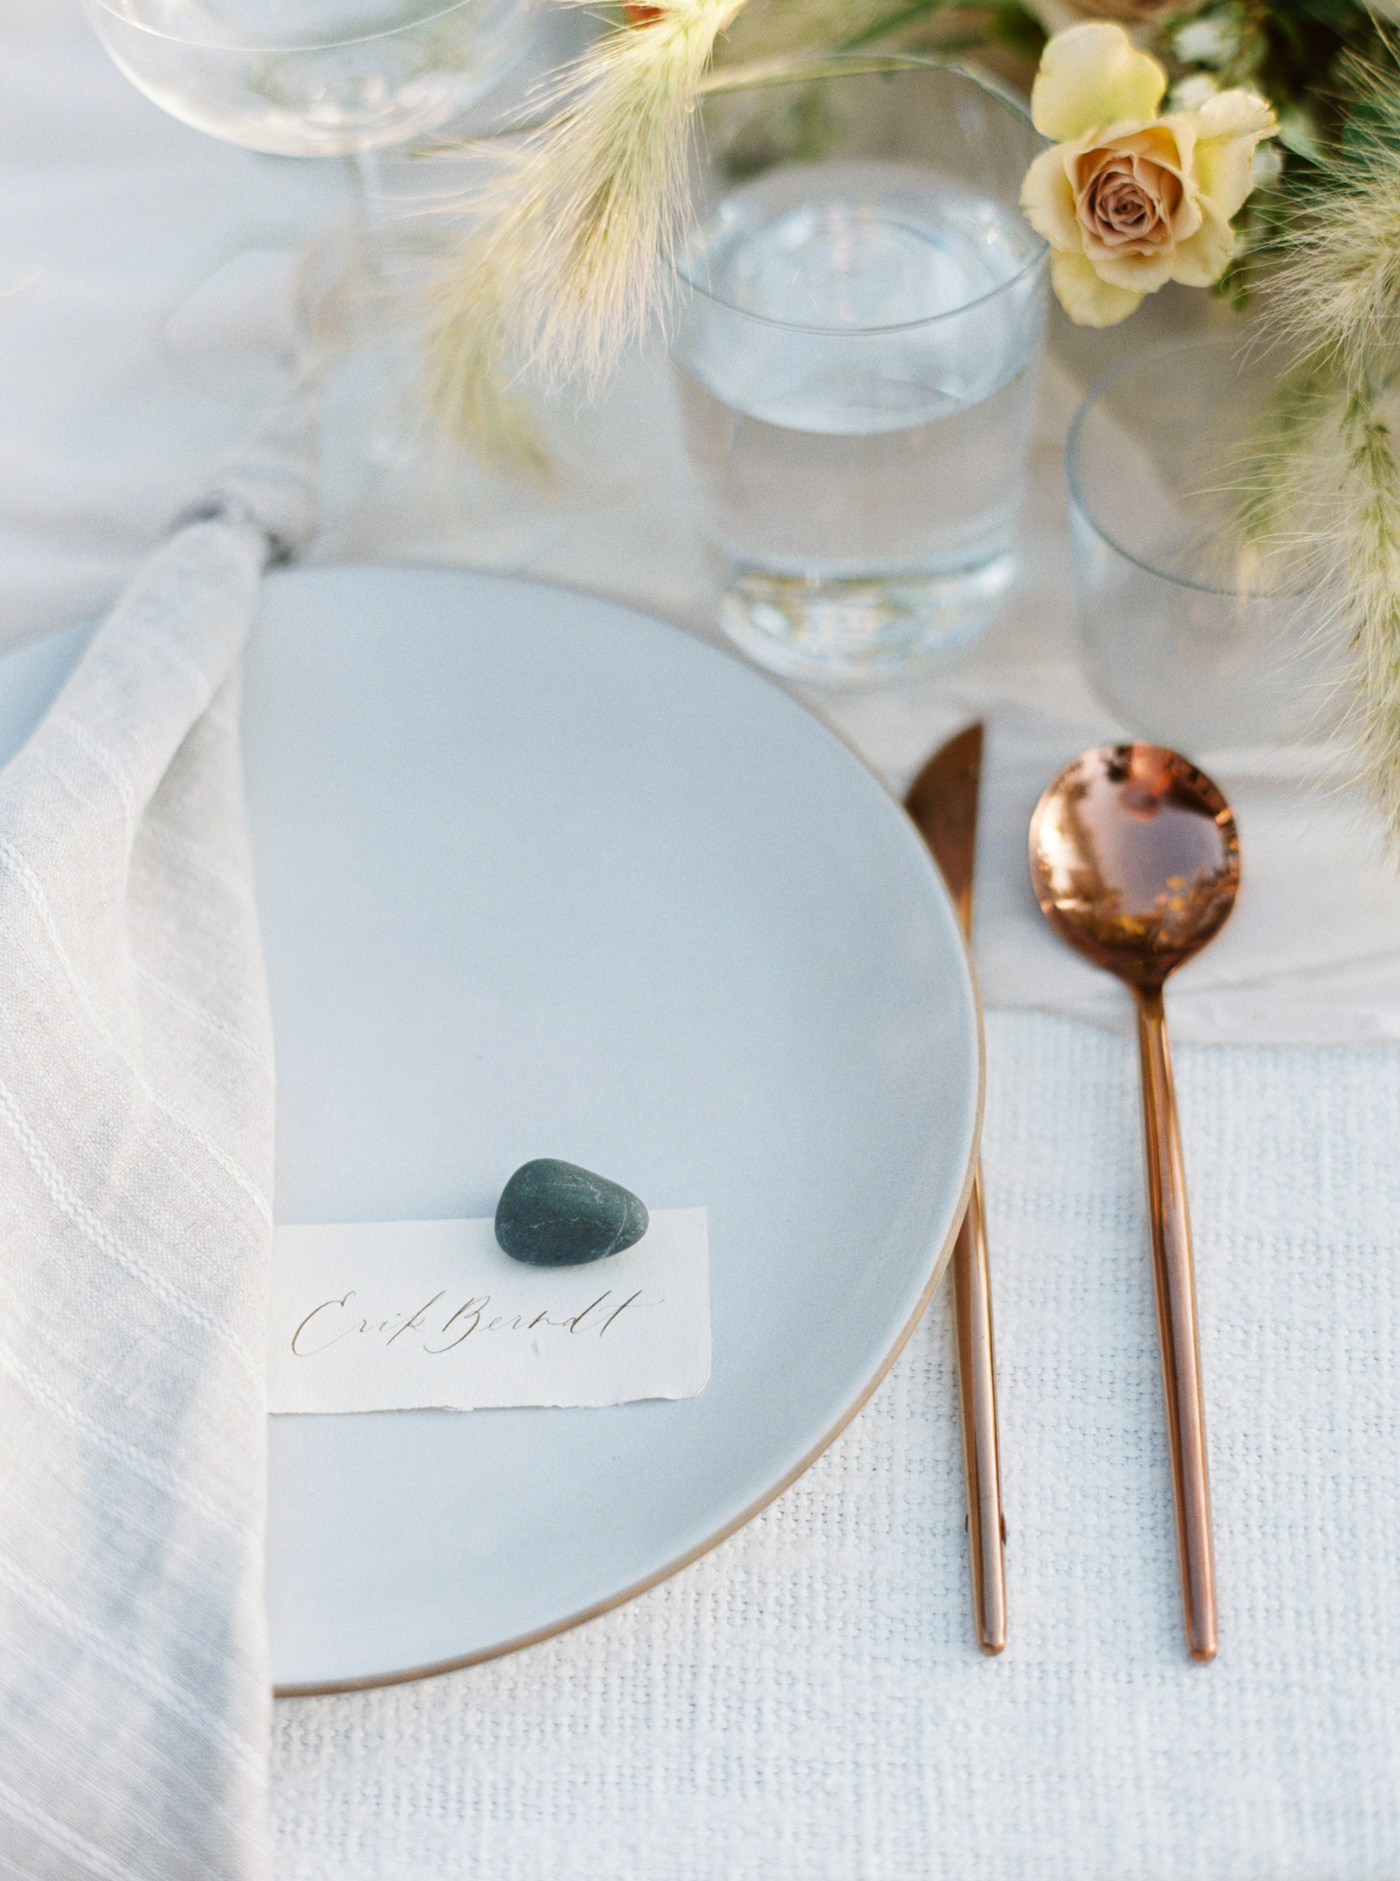 stone on place card